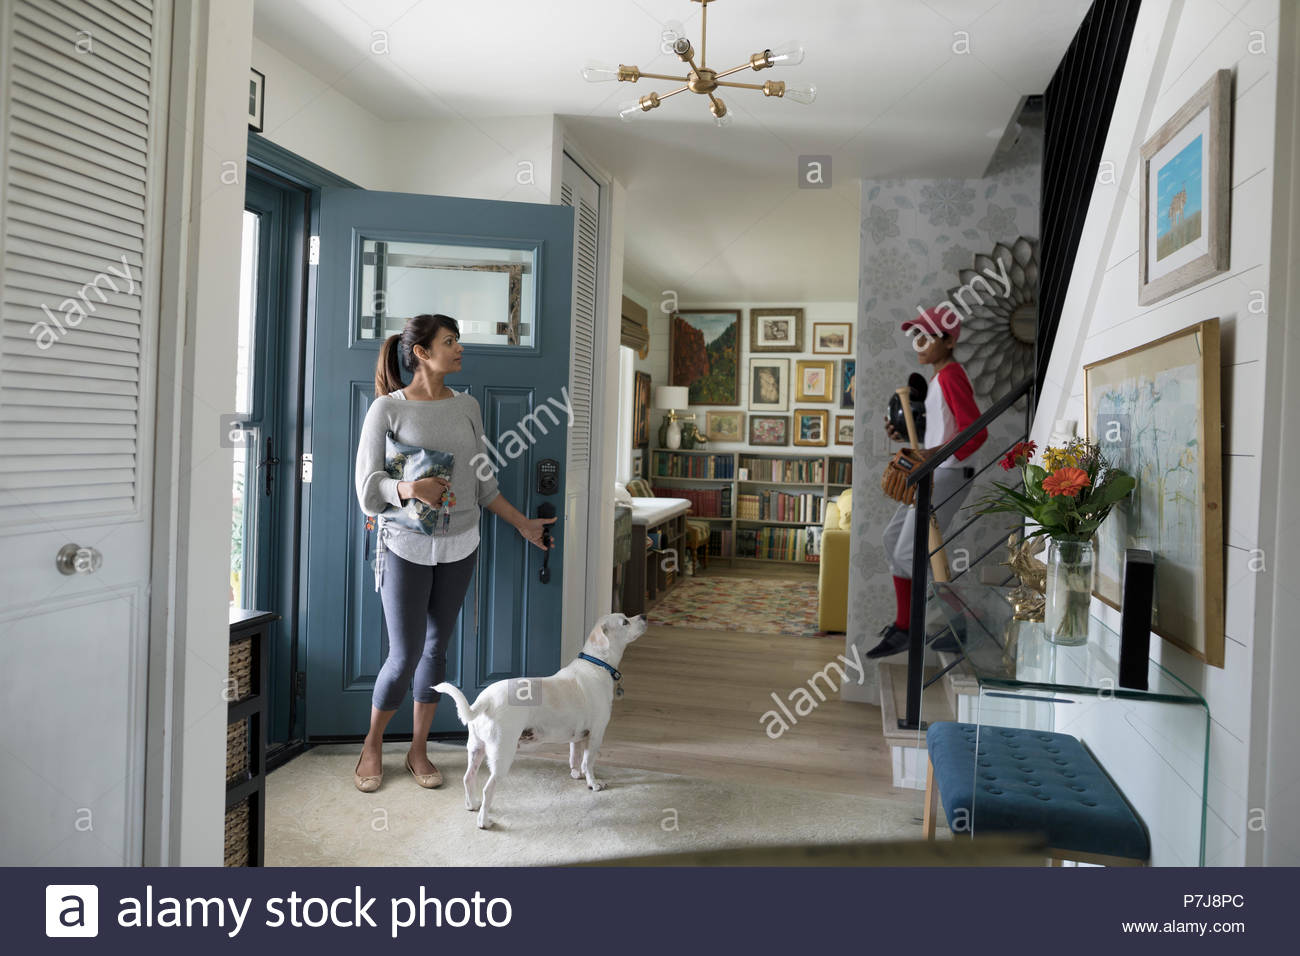 Woman and dog waiting in foyer - Stock Image